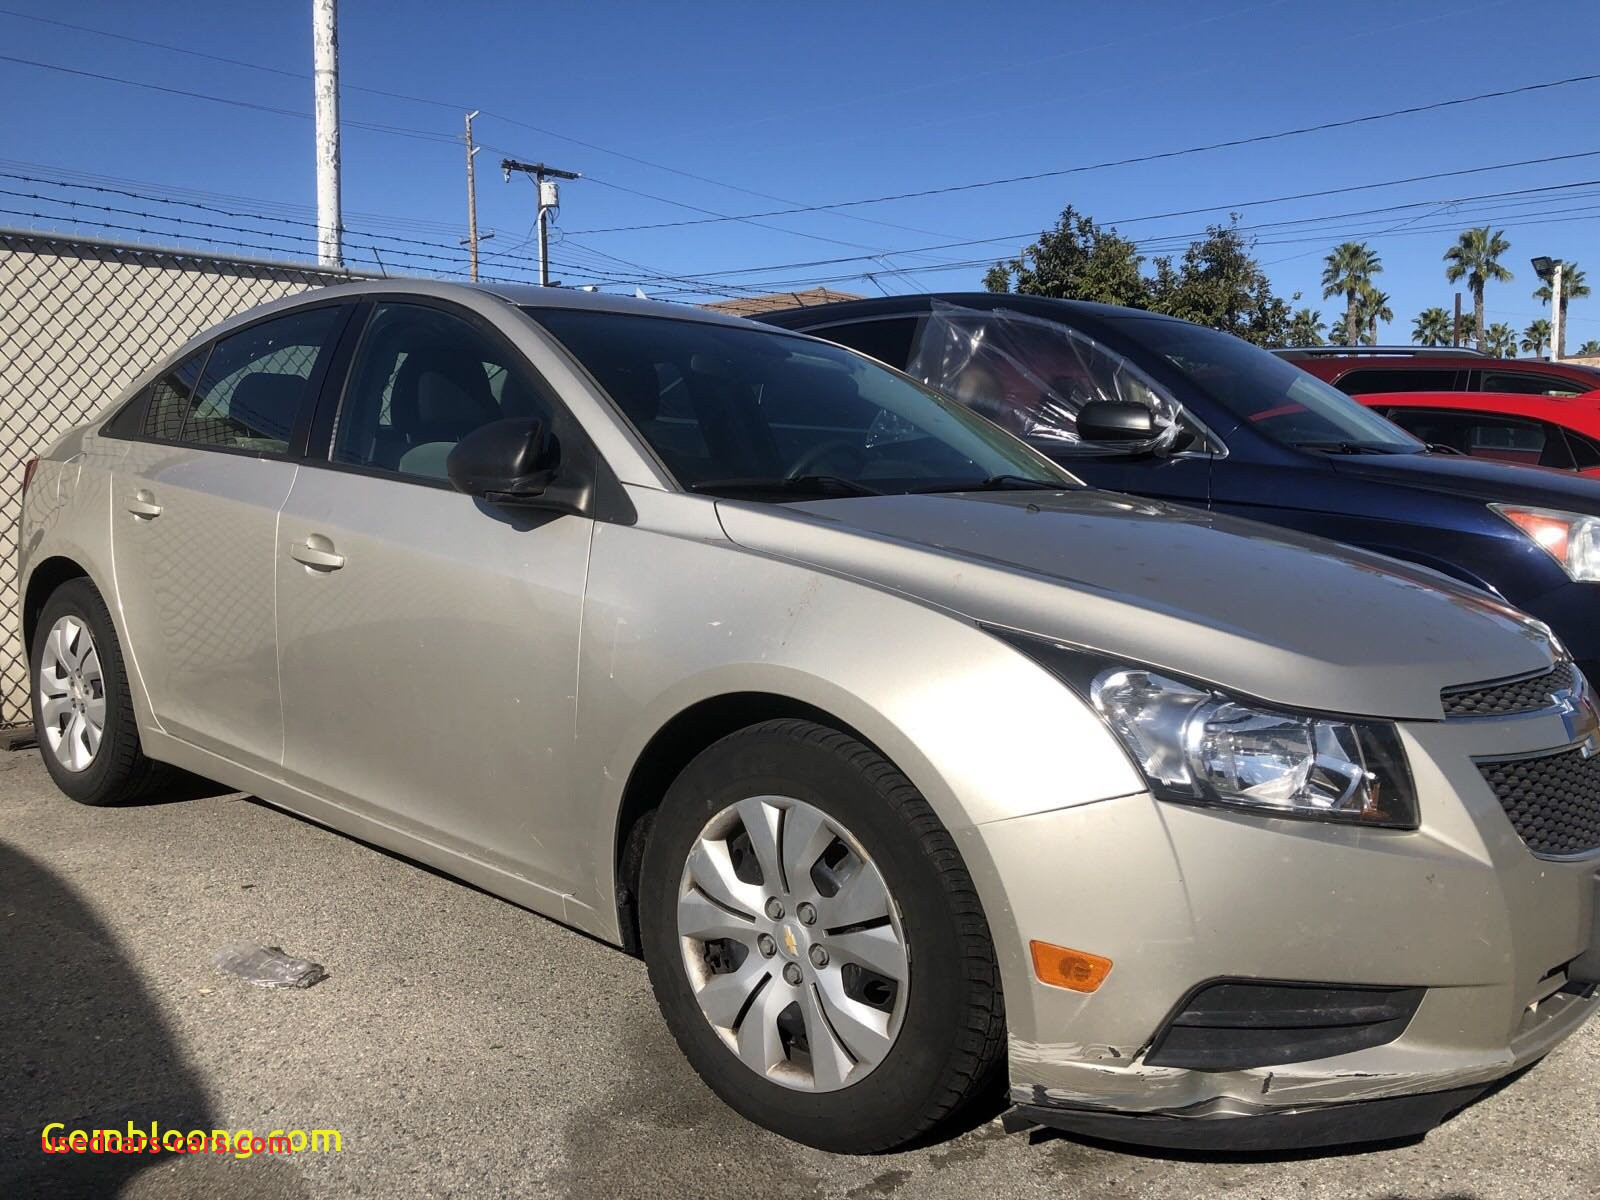 Used Cars for Sale $10000 by Owner Beautiful Fresh Cars for Sale by Owner Near Me Under